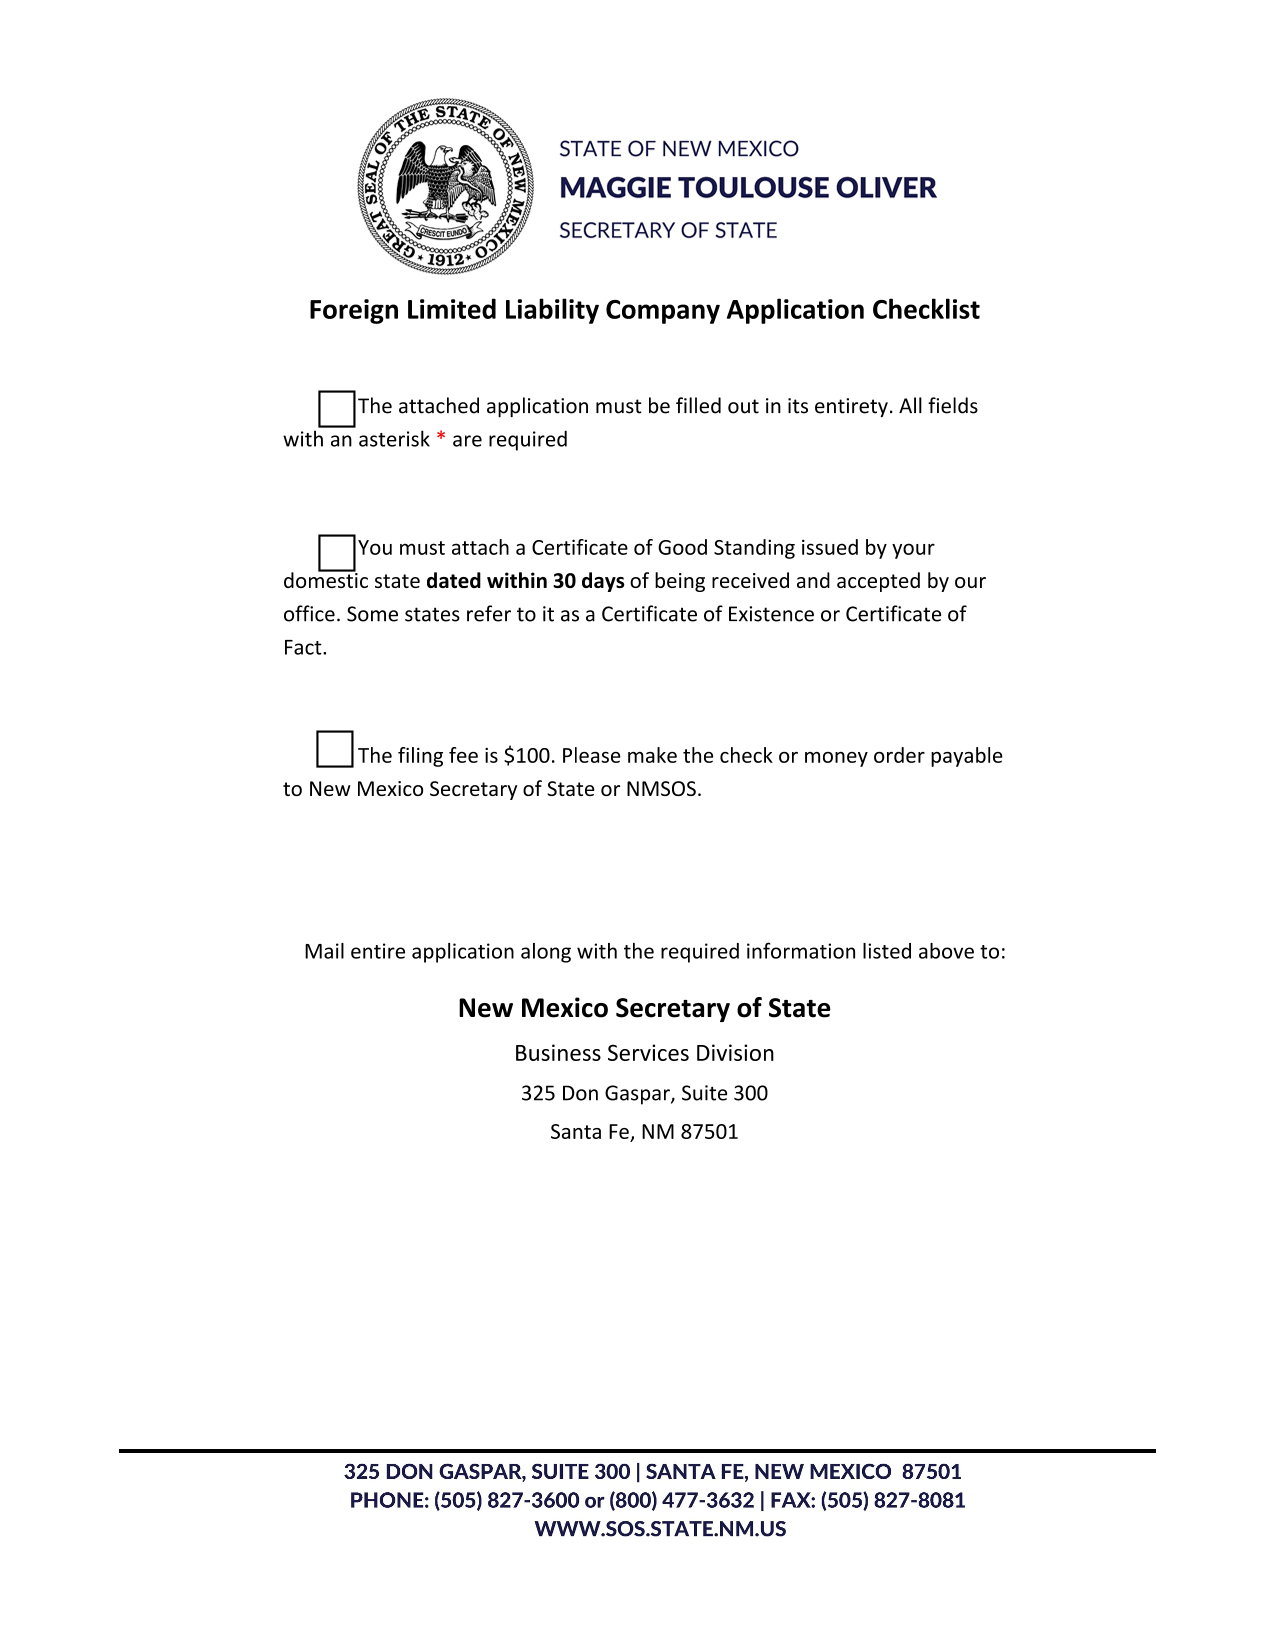 new-mexico-foreign-limited-liability-company-application-for-registration